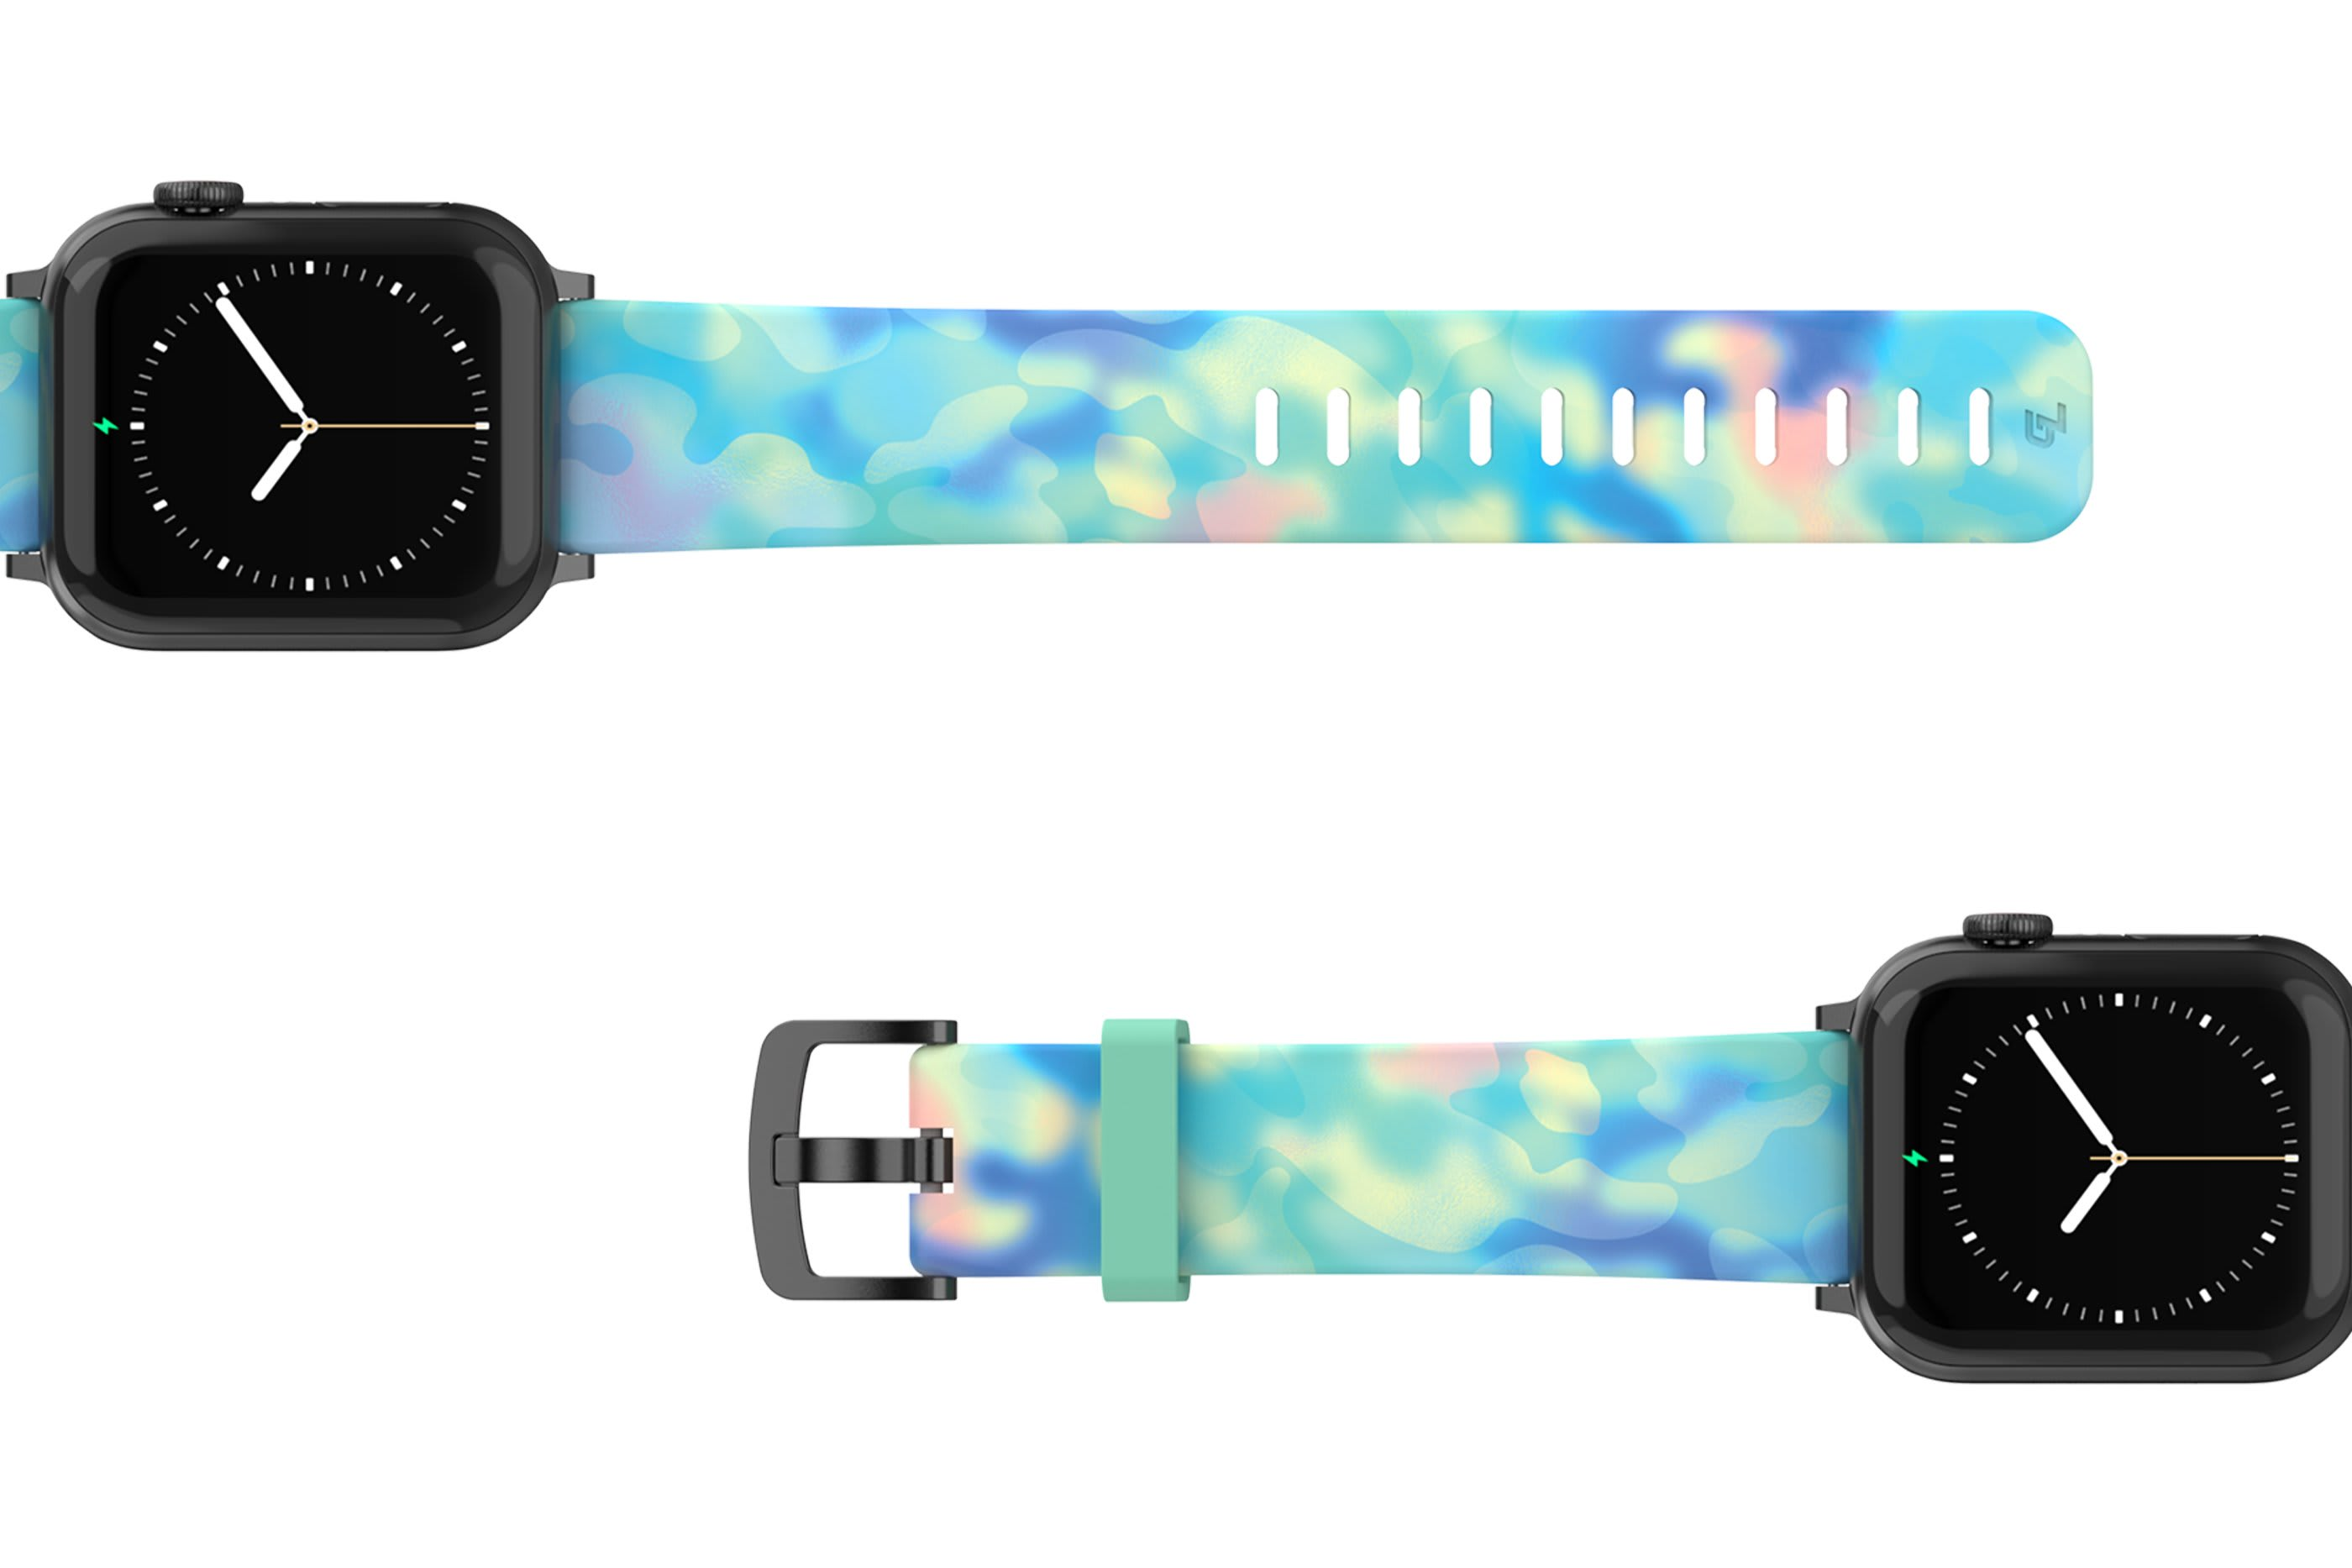 Opal - Apple watch band with gray hardware viewed top down